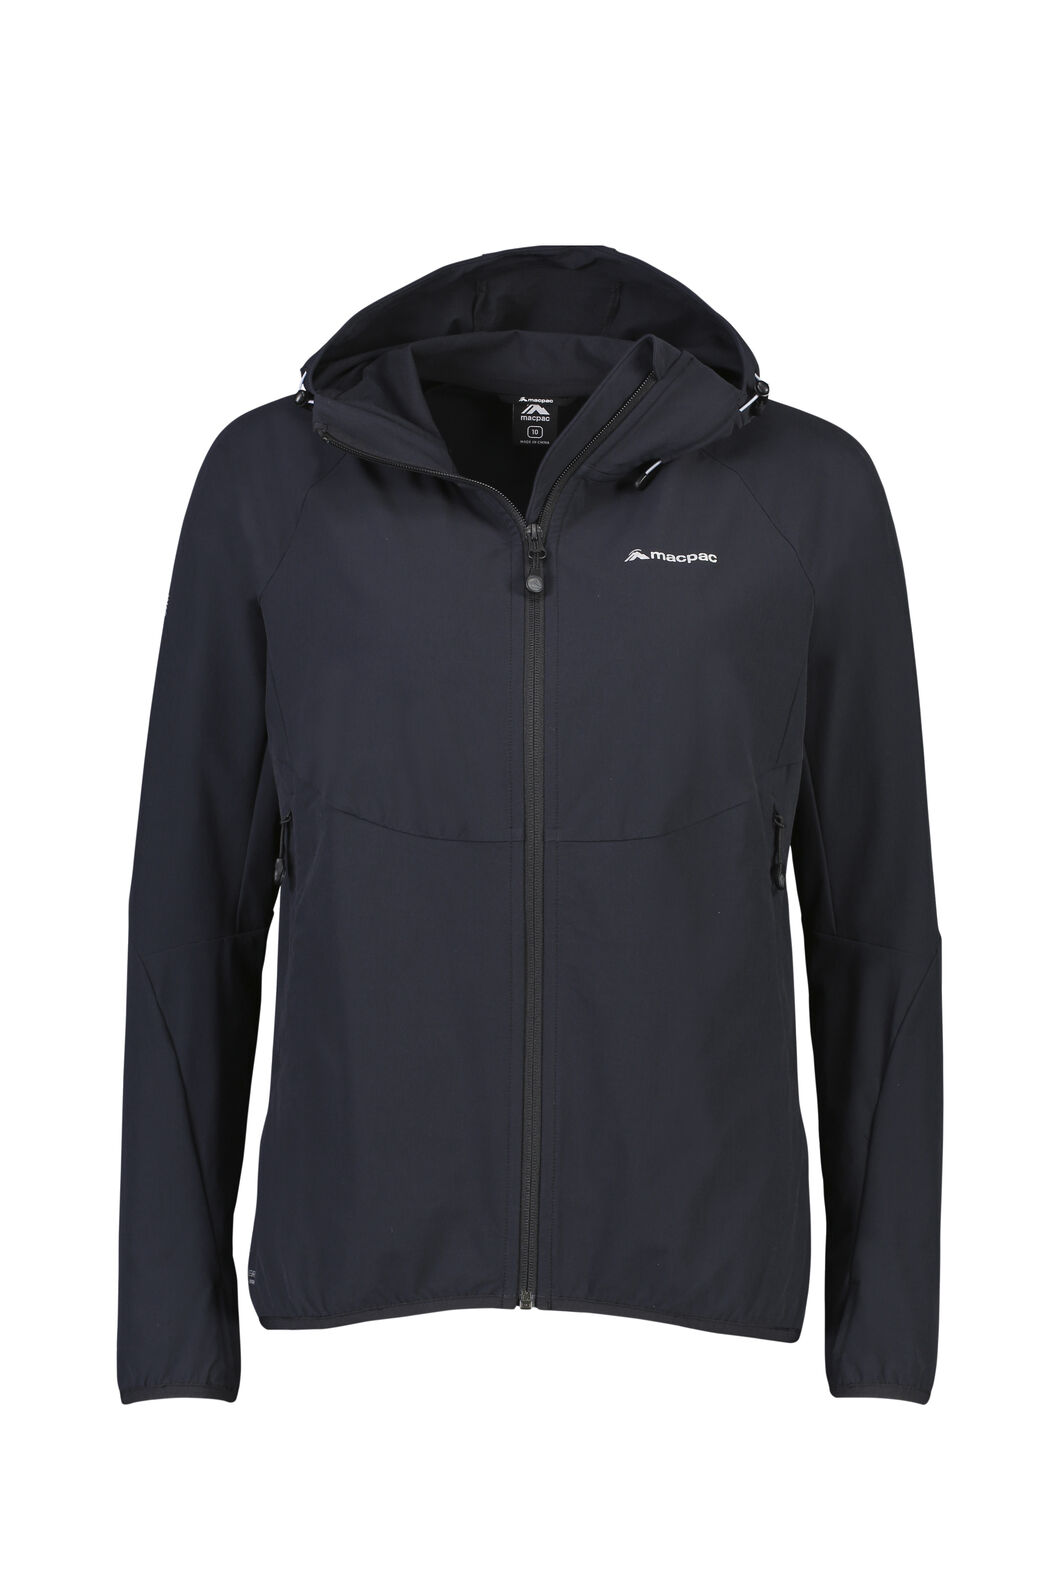 Macpac Mannering Hooded Jacket - Women's, Black, hi-res